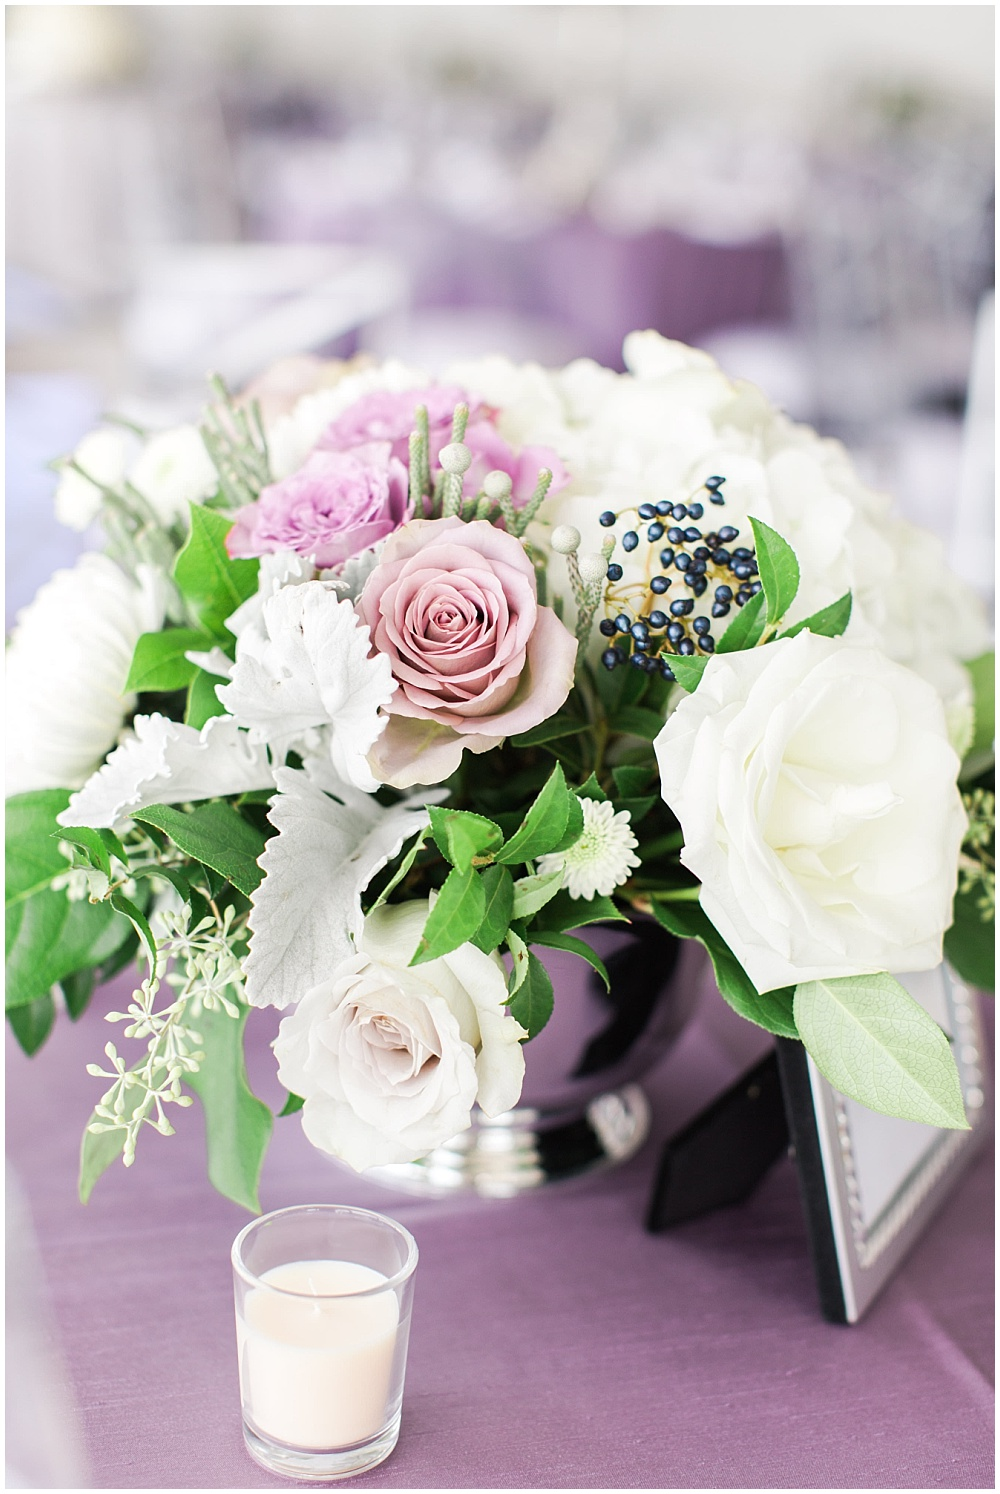 Purple, white and green floral centerpieces | D'Amore Wedding by Ivan & Louise Images & Jessica Dum Wedding Coordination